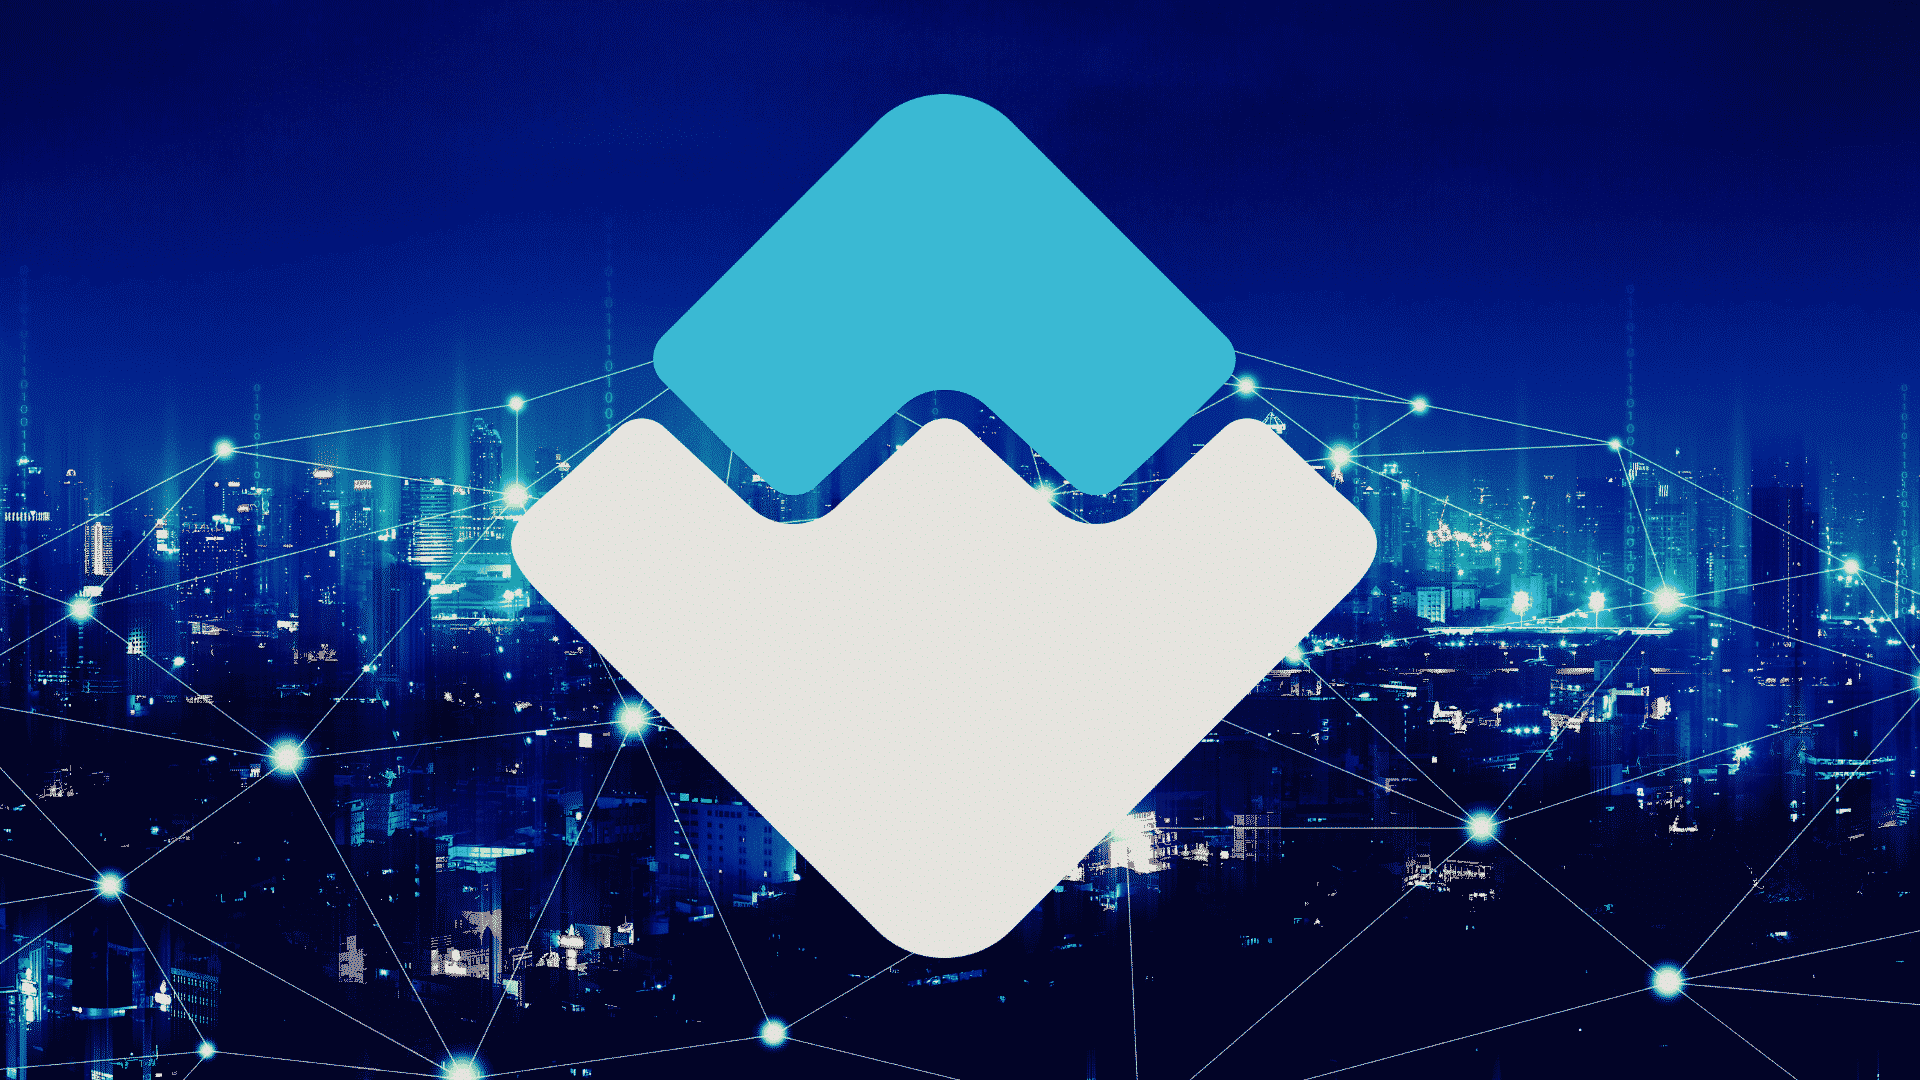 Waves Enterprise Releases Major Network Upgrade